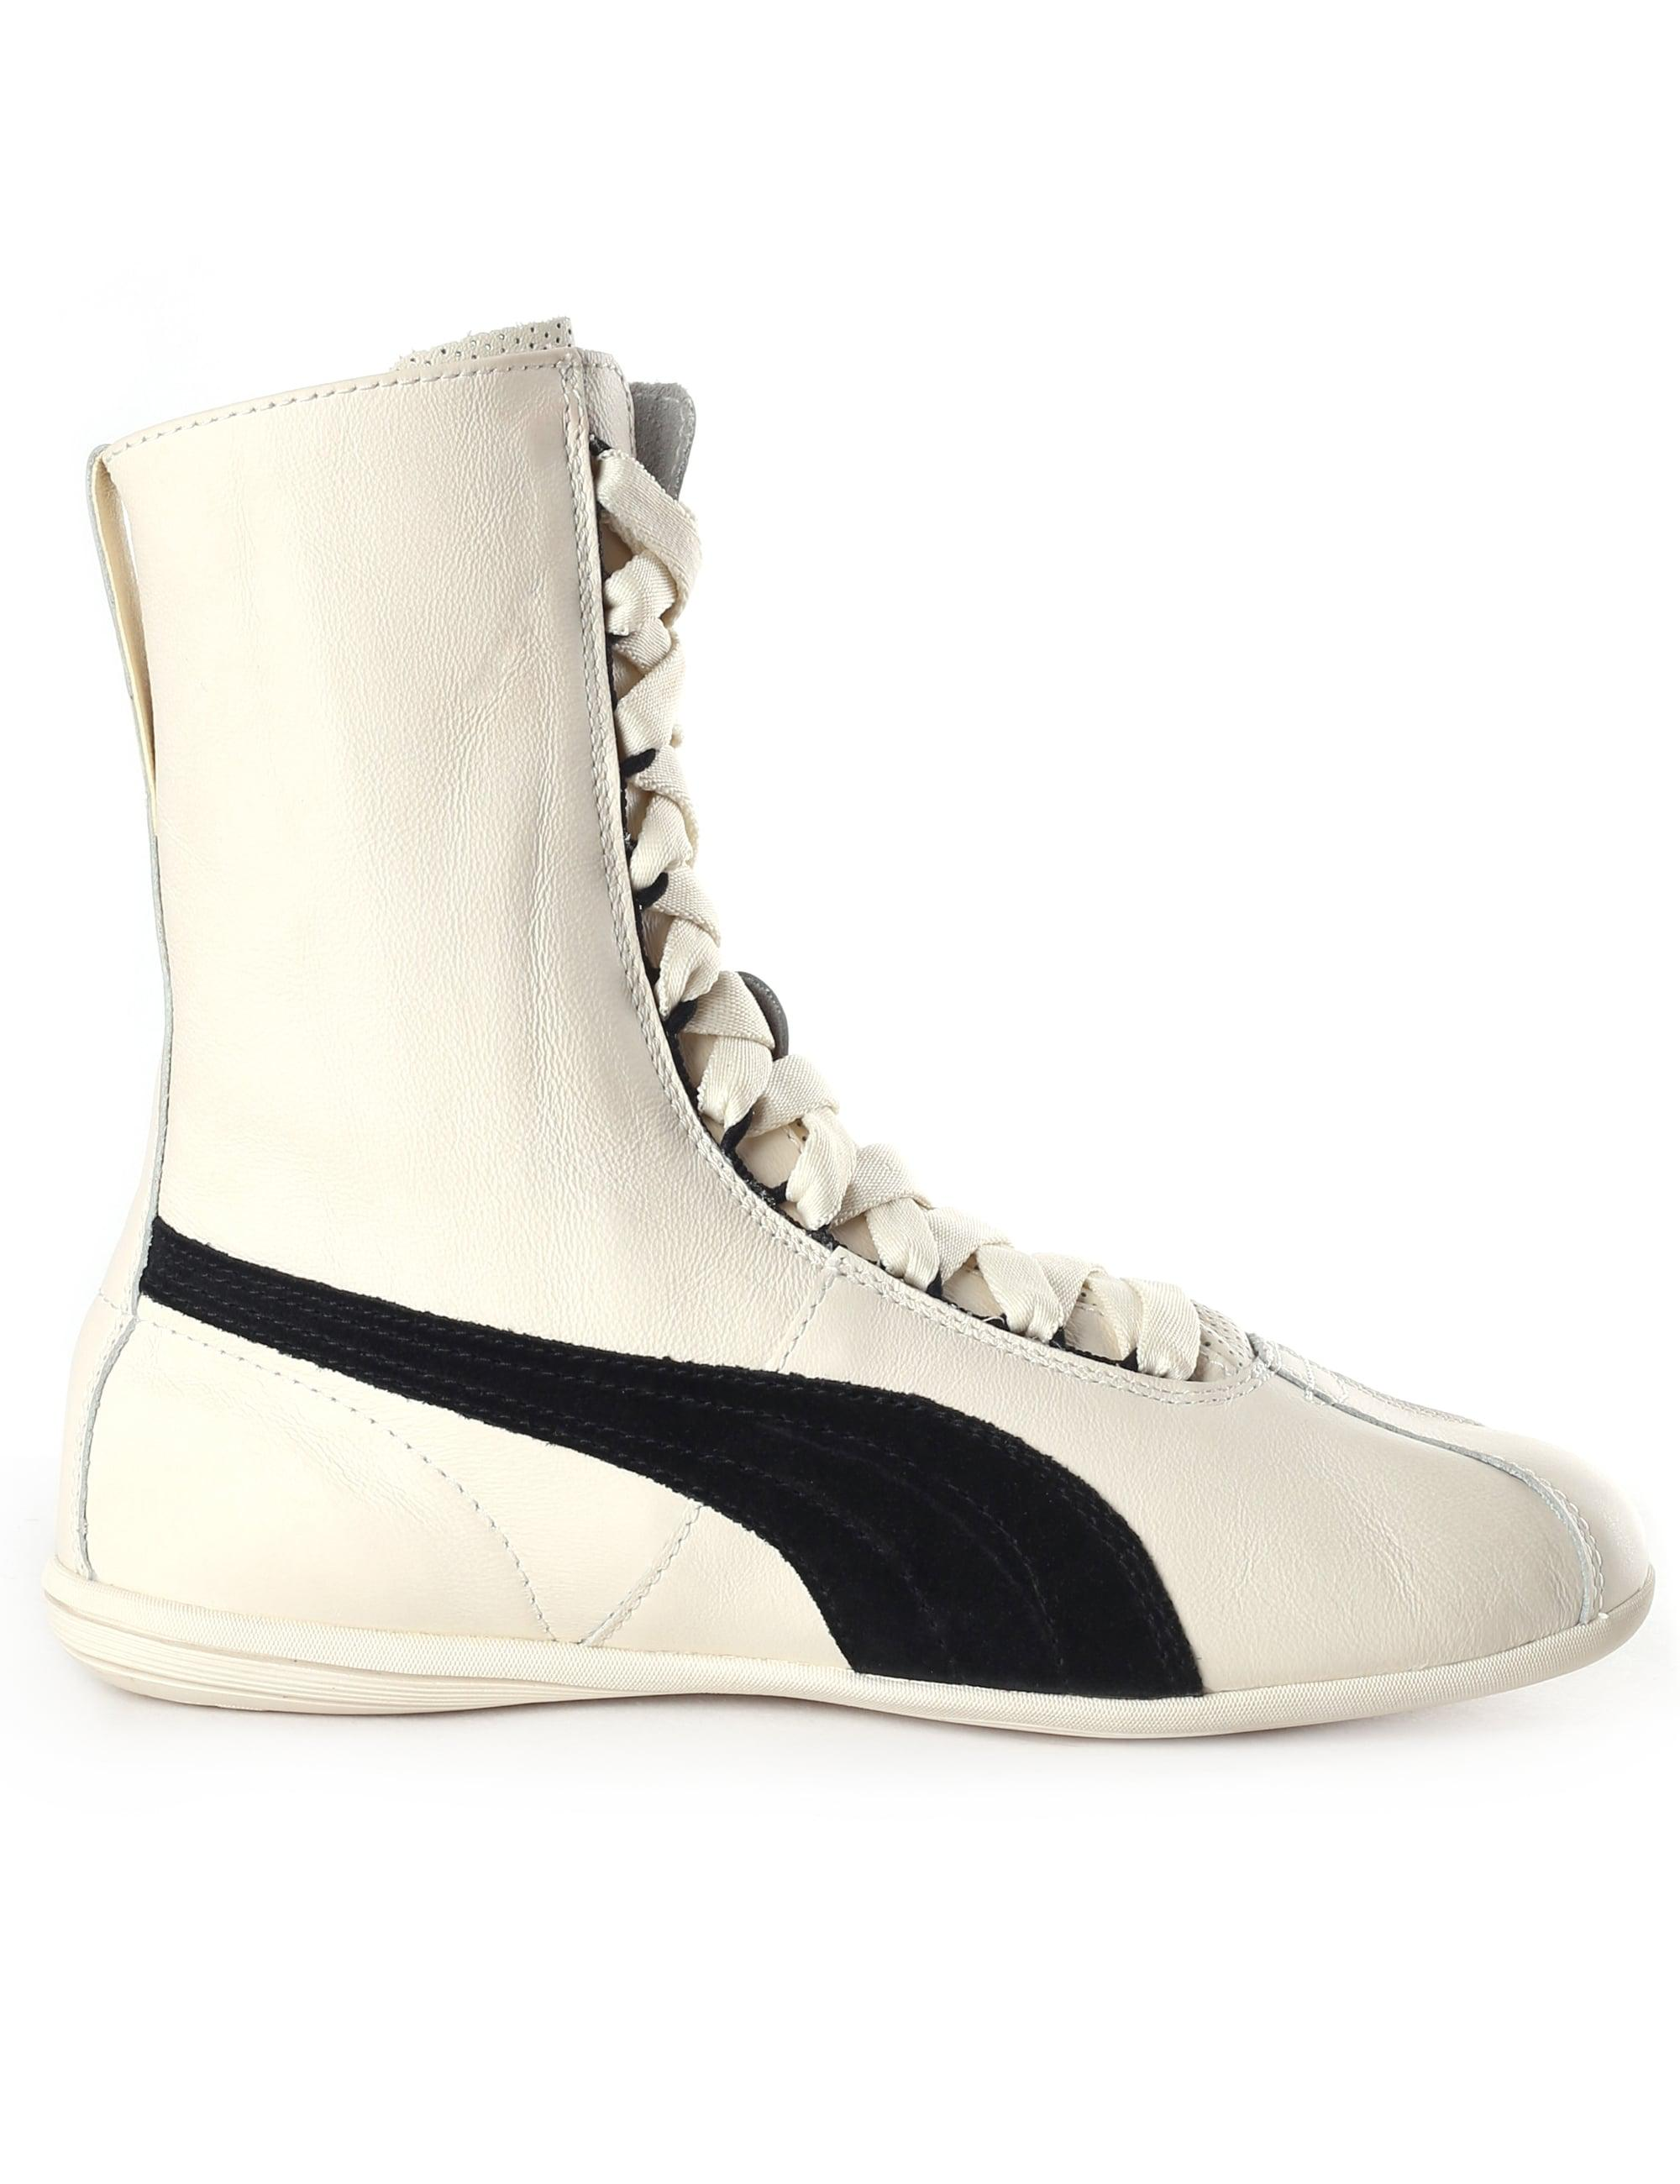 b772cf78dc3 Puma Eskiva Boxing Hi Top Trainers in White - Lyst